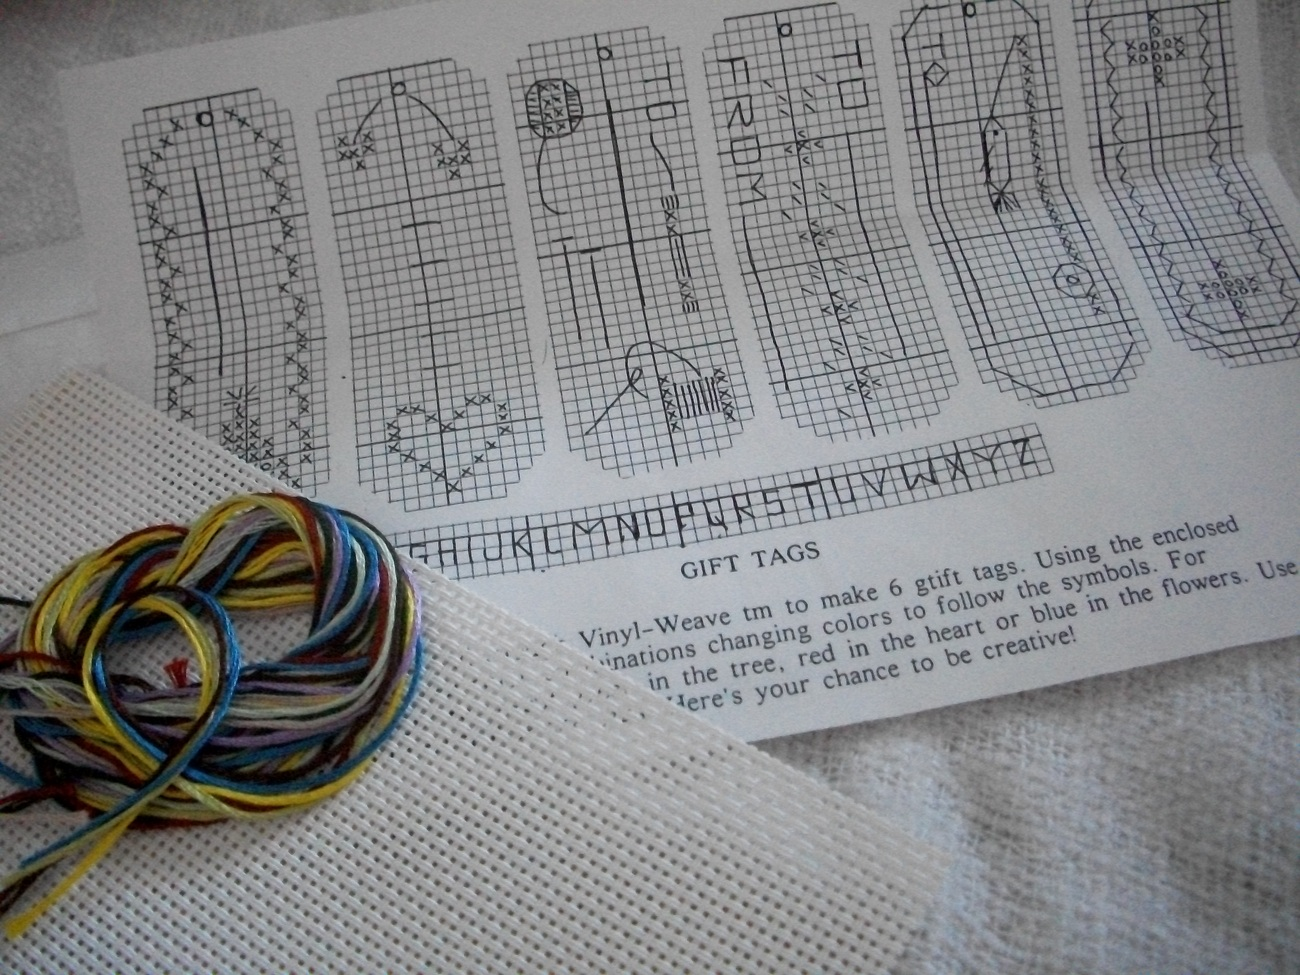 Vinyl Weave Cross Stitch Gift Tags Kit